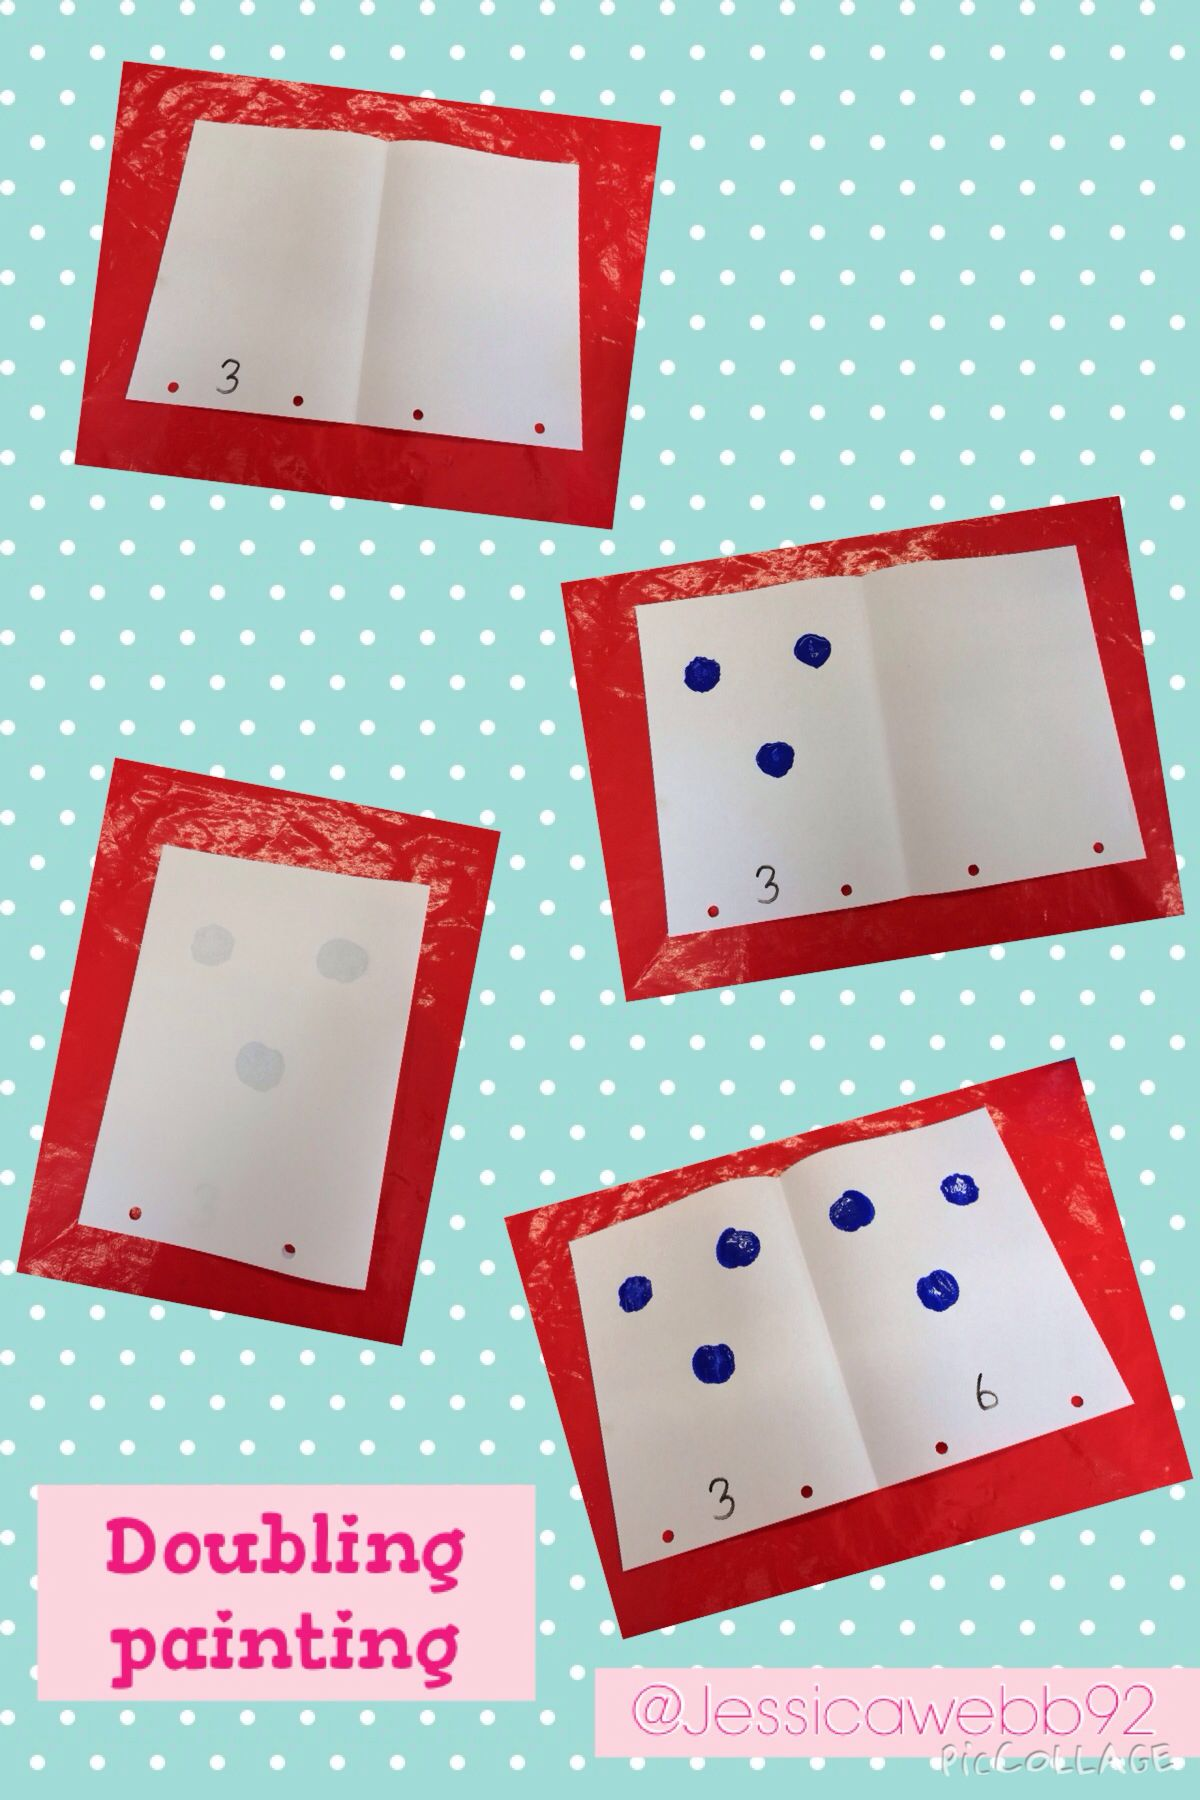 Doubling In The Art Area Put The Correct Number Of Dots